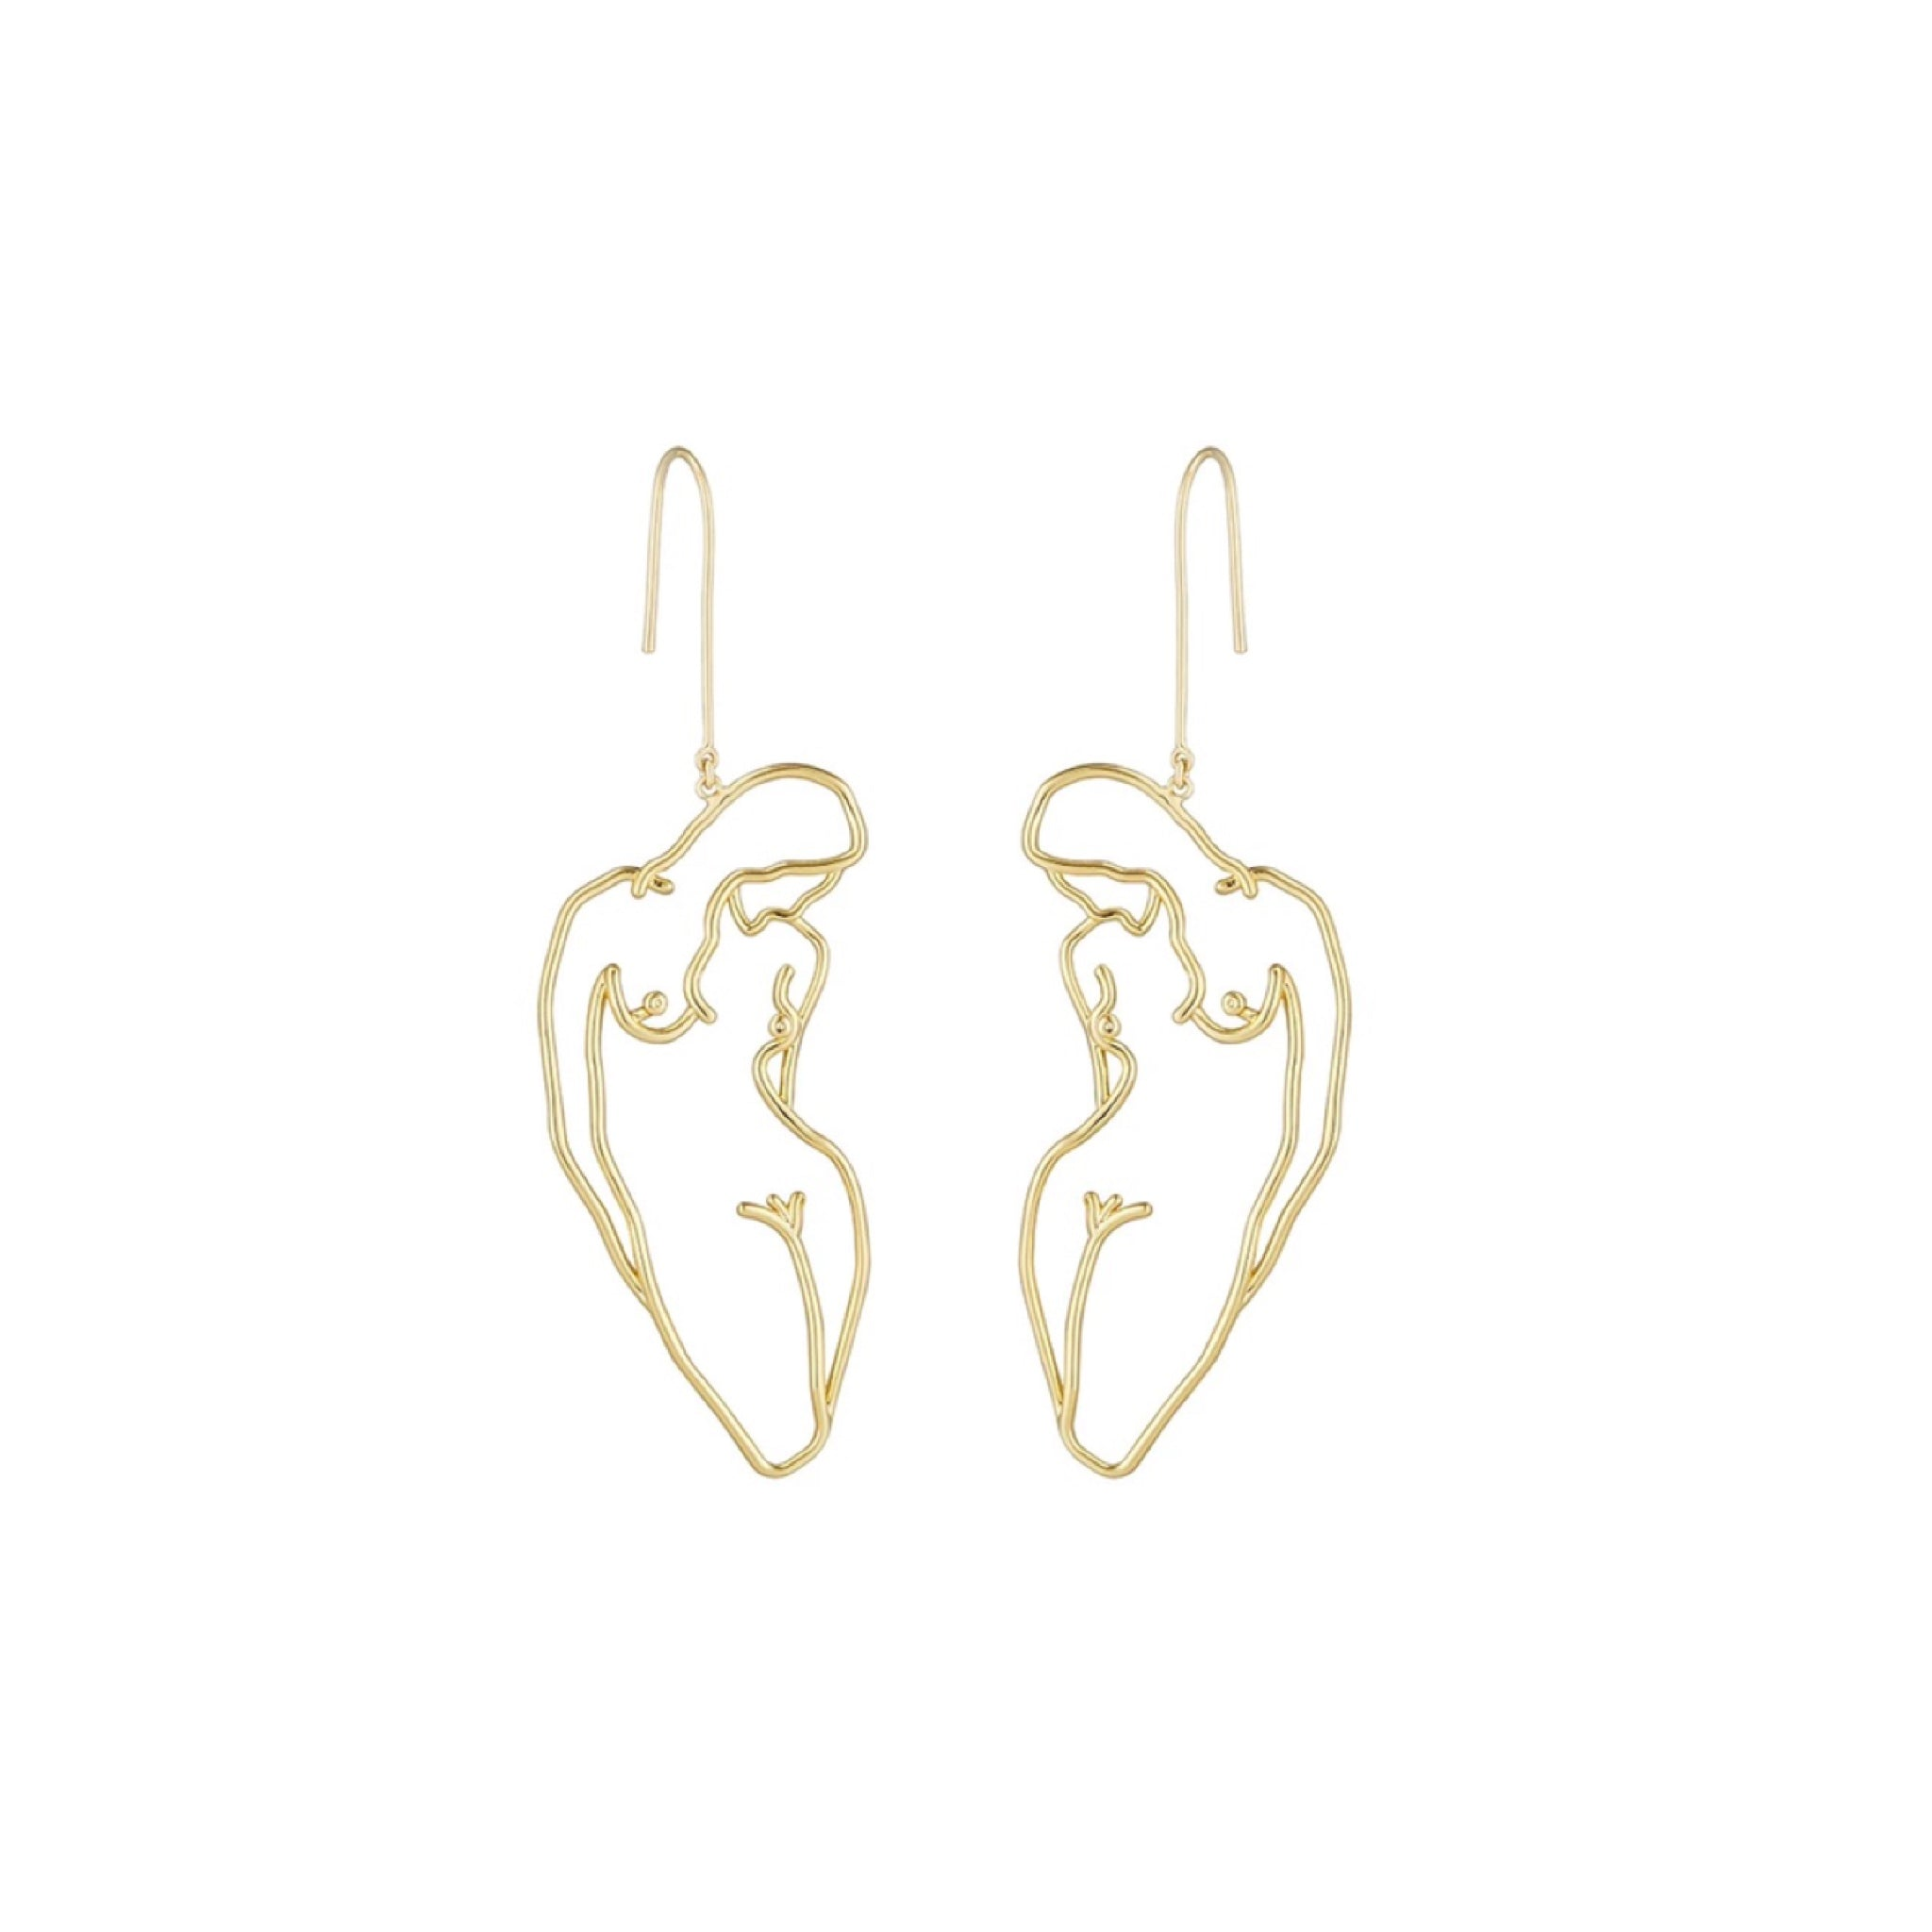 The Divinus Earrings